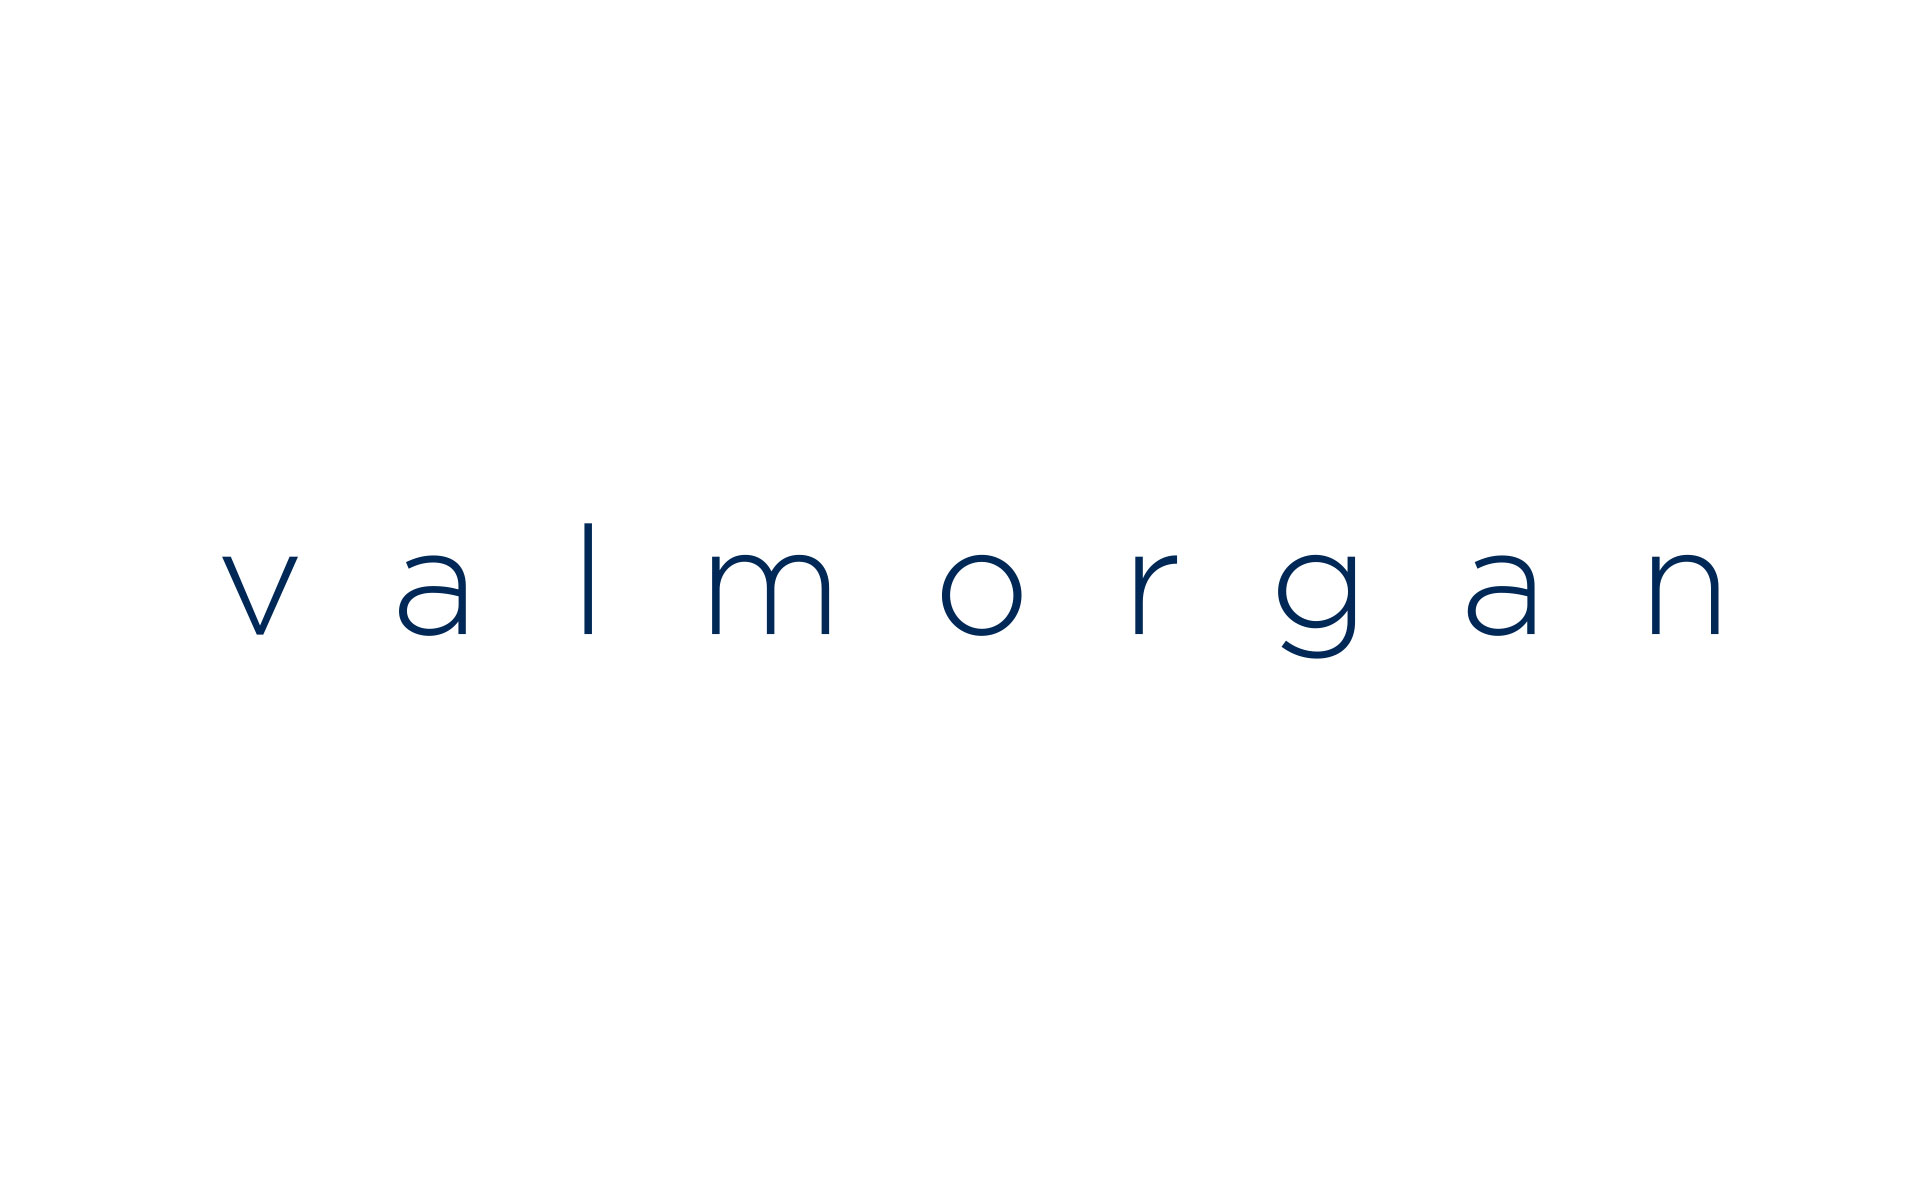 Val Morgan branding, advertising, marketing, publications, events & online work designed by Amy at Yellow Sunday